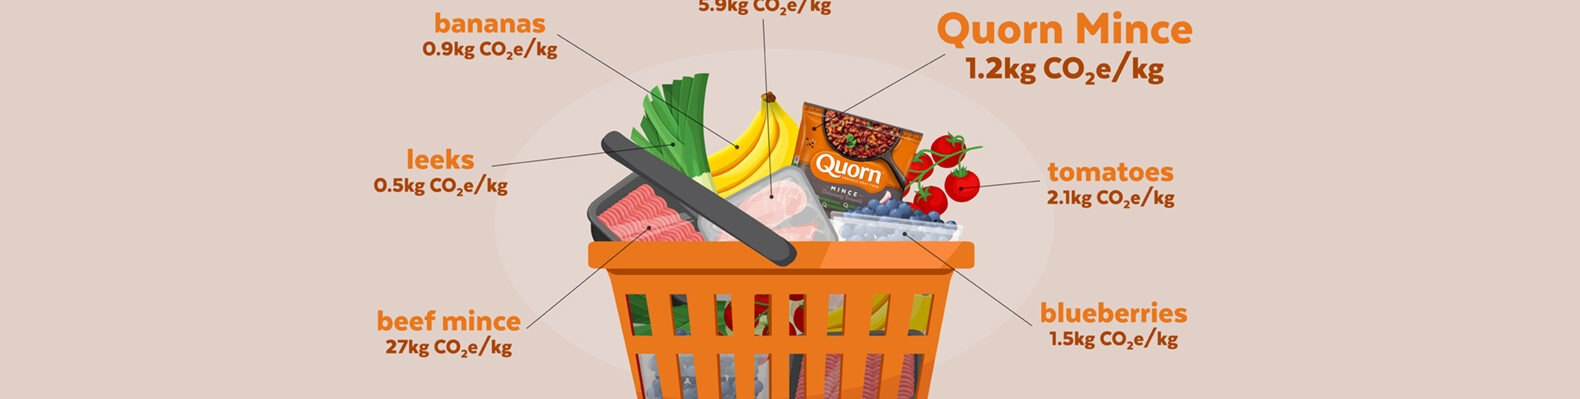 diagram of food, including meatless Quorn product, in a shopping basket with numbers depicting carbon footprint of each item